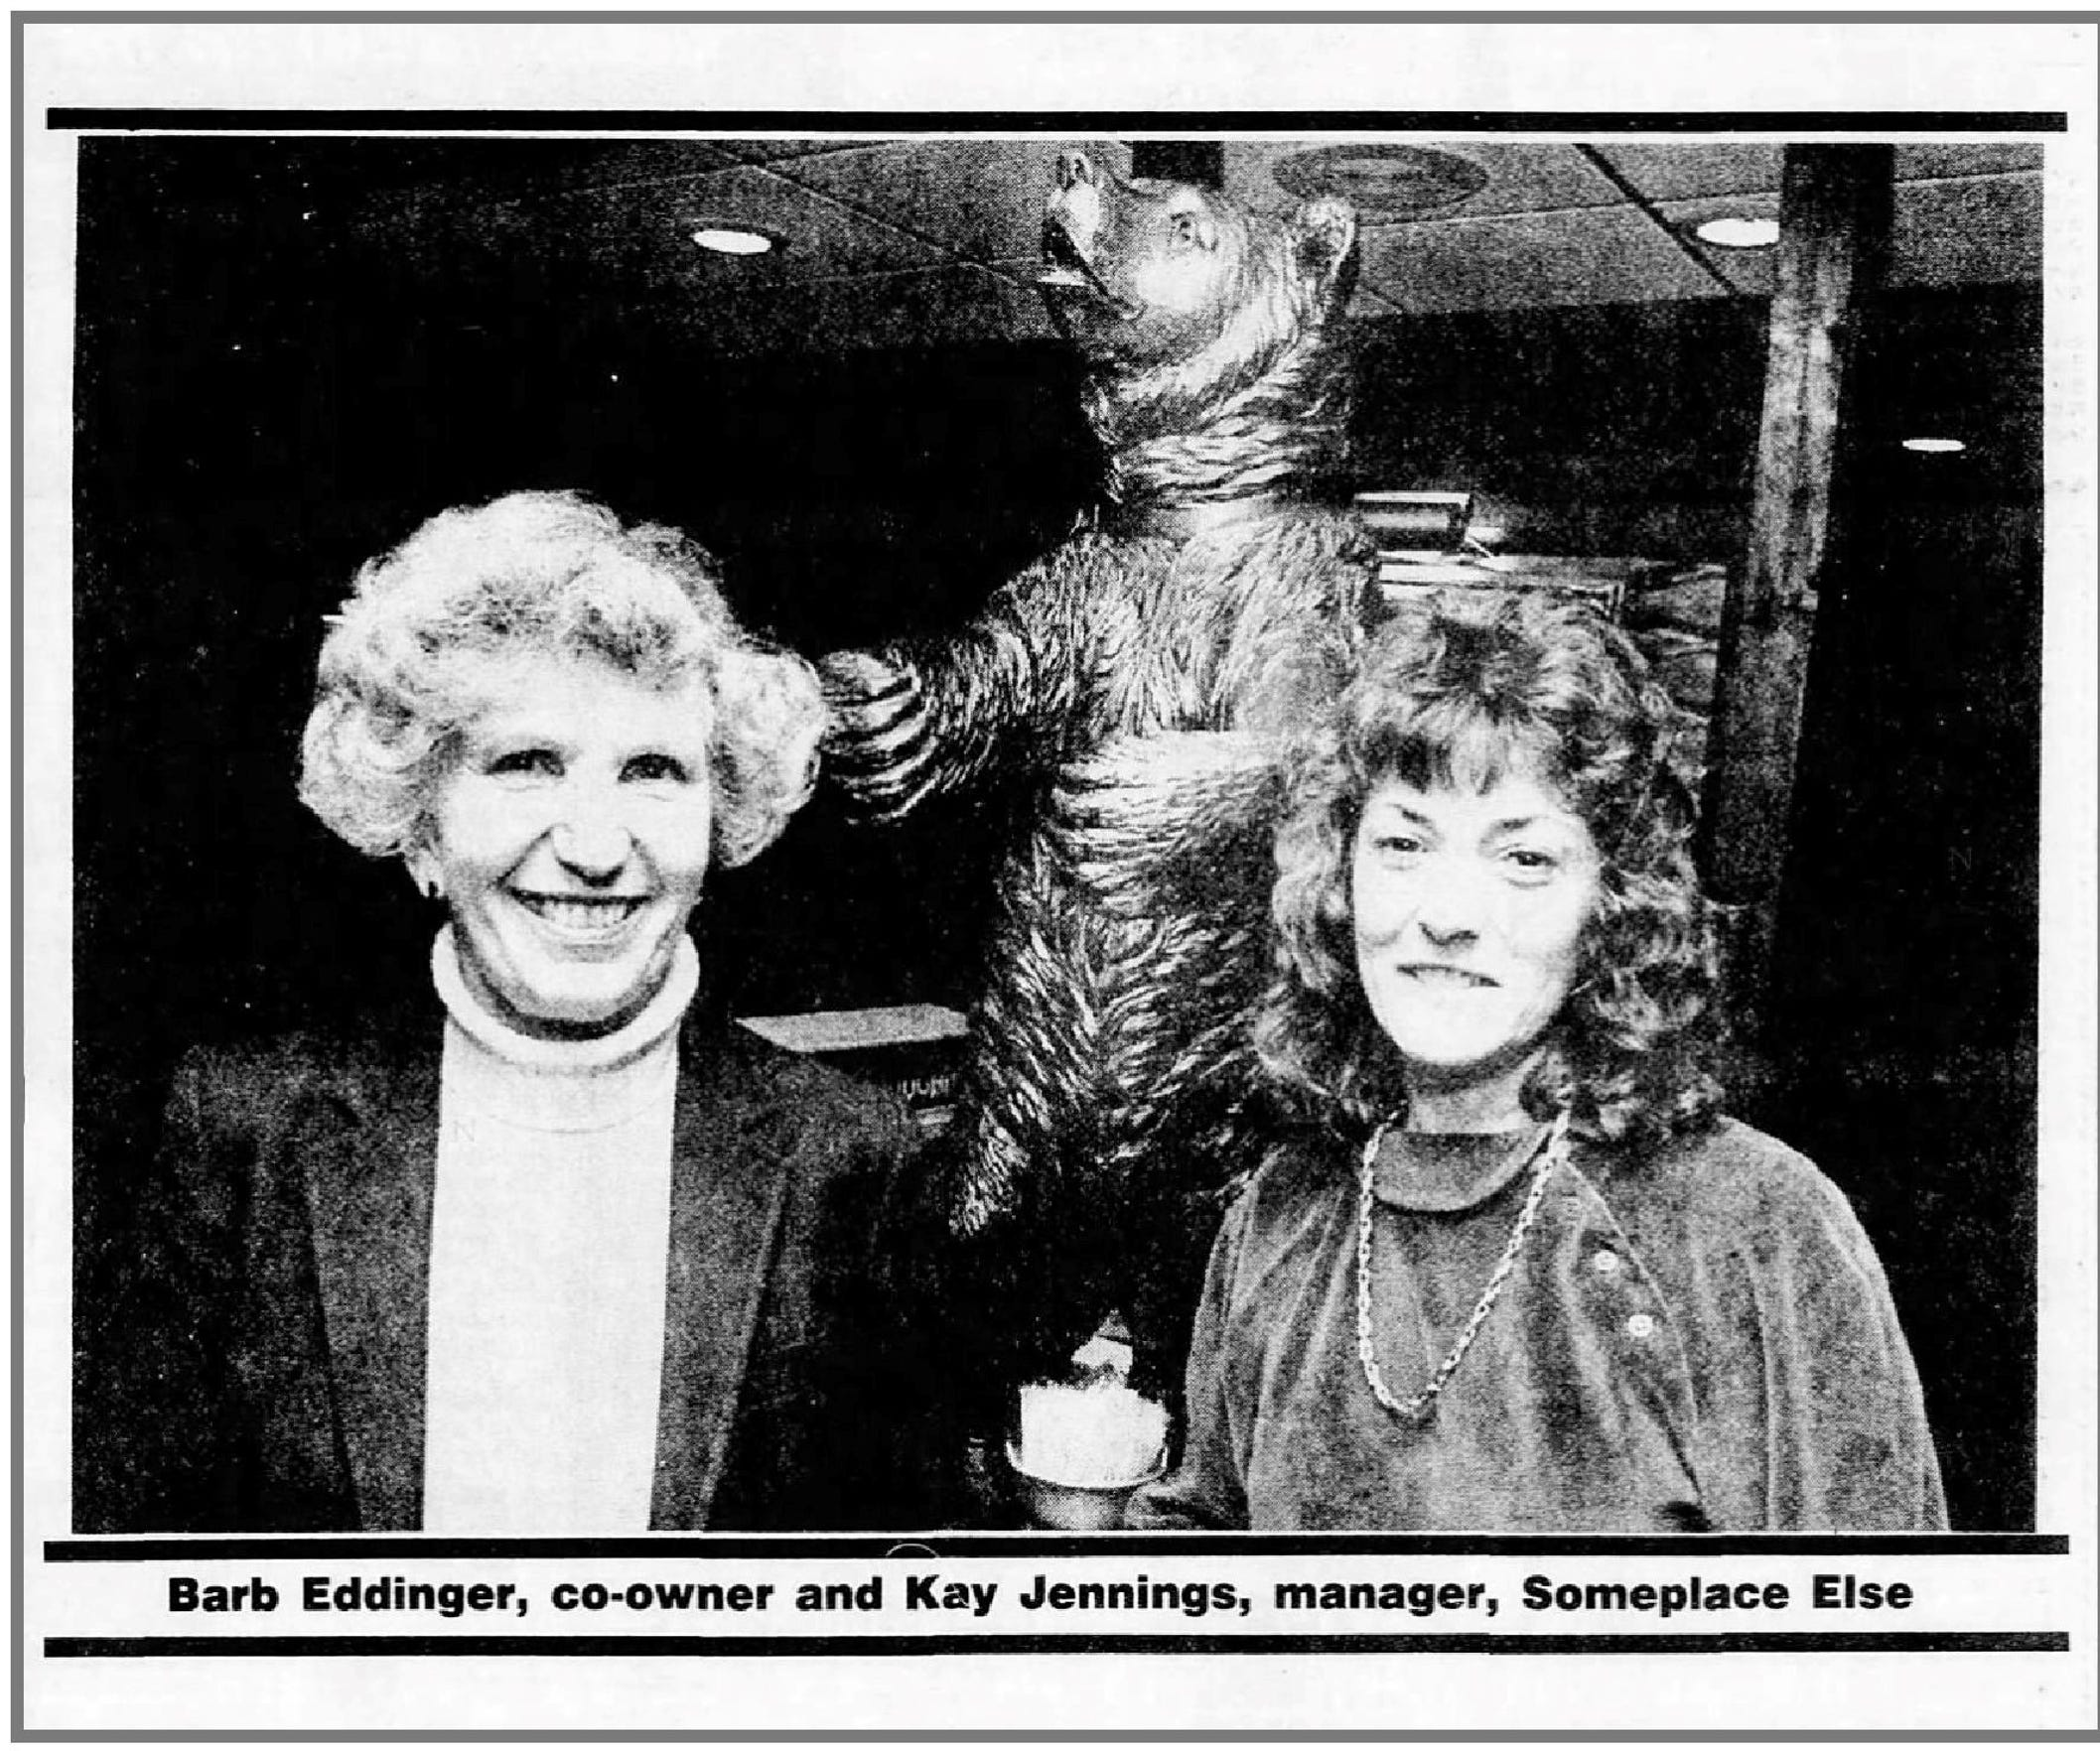 Barb Eddinger and Kay Jennings in the Feb, 21, 1989 edition of the Battle Creek Enquirer.